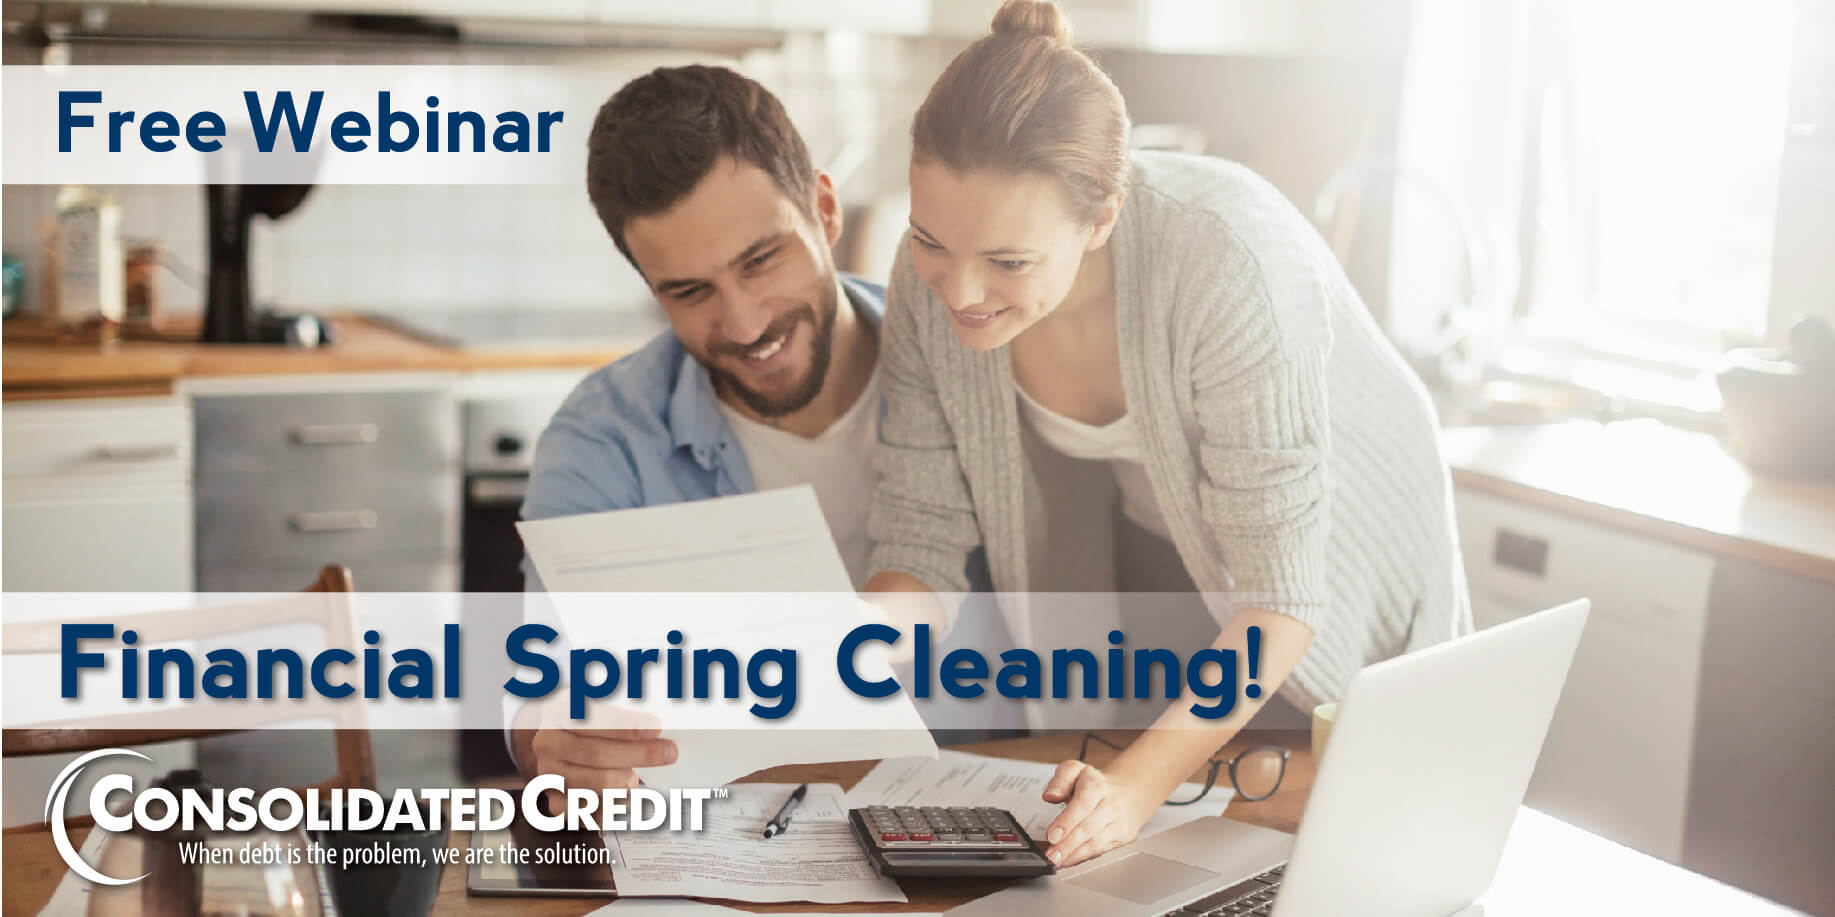 Free Webinar: Financial Spring Cleaning